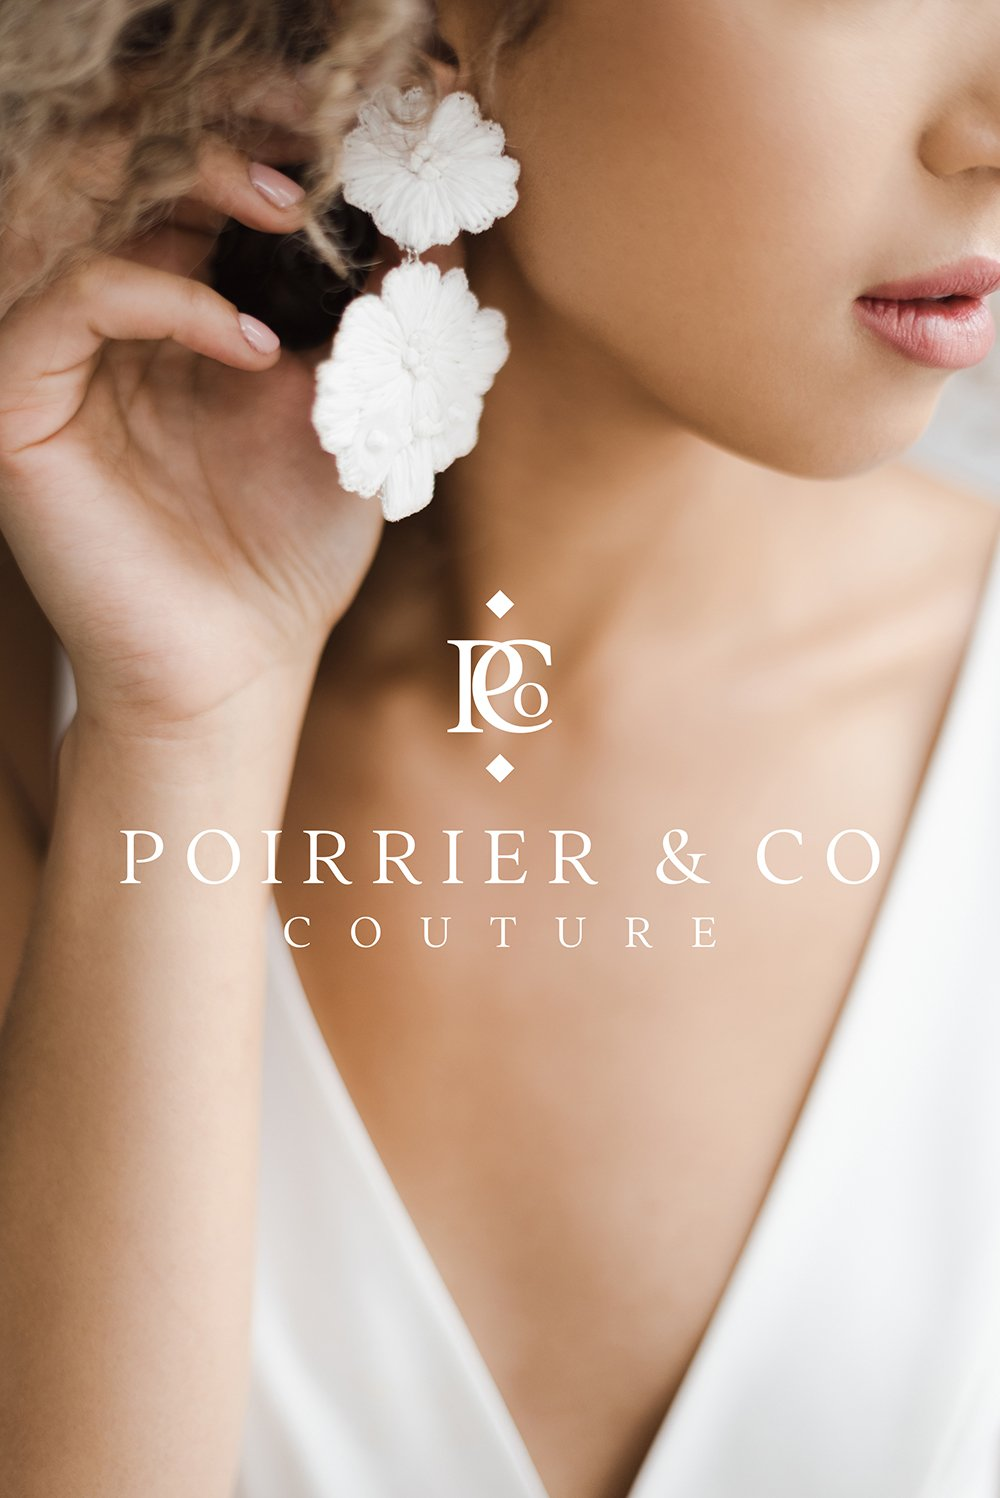 Poirrier & Co Couture Logo Design by Fancy Girl Design Studio | elegant, timeless, yet bold enough to make a statement